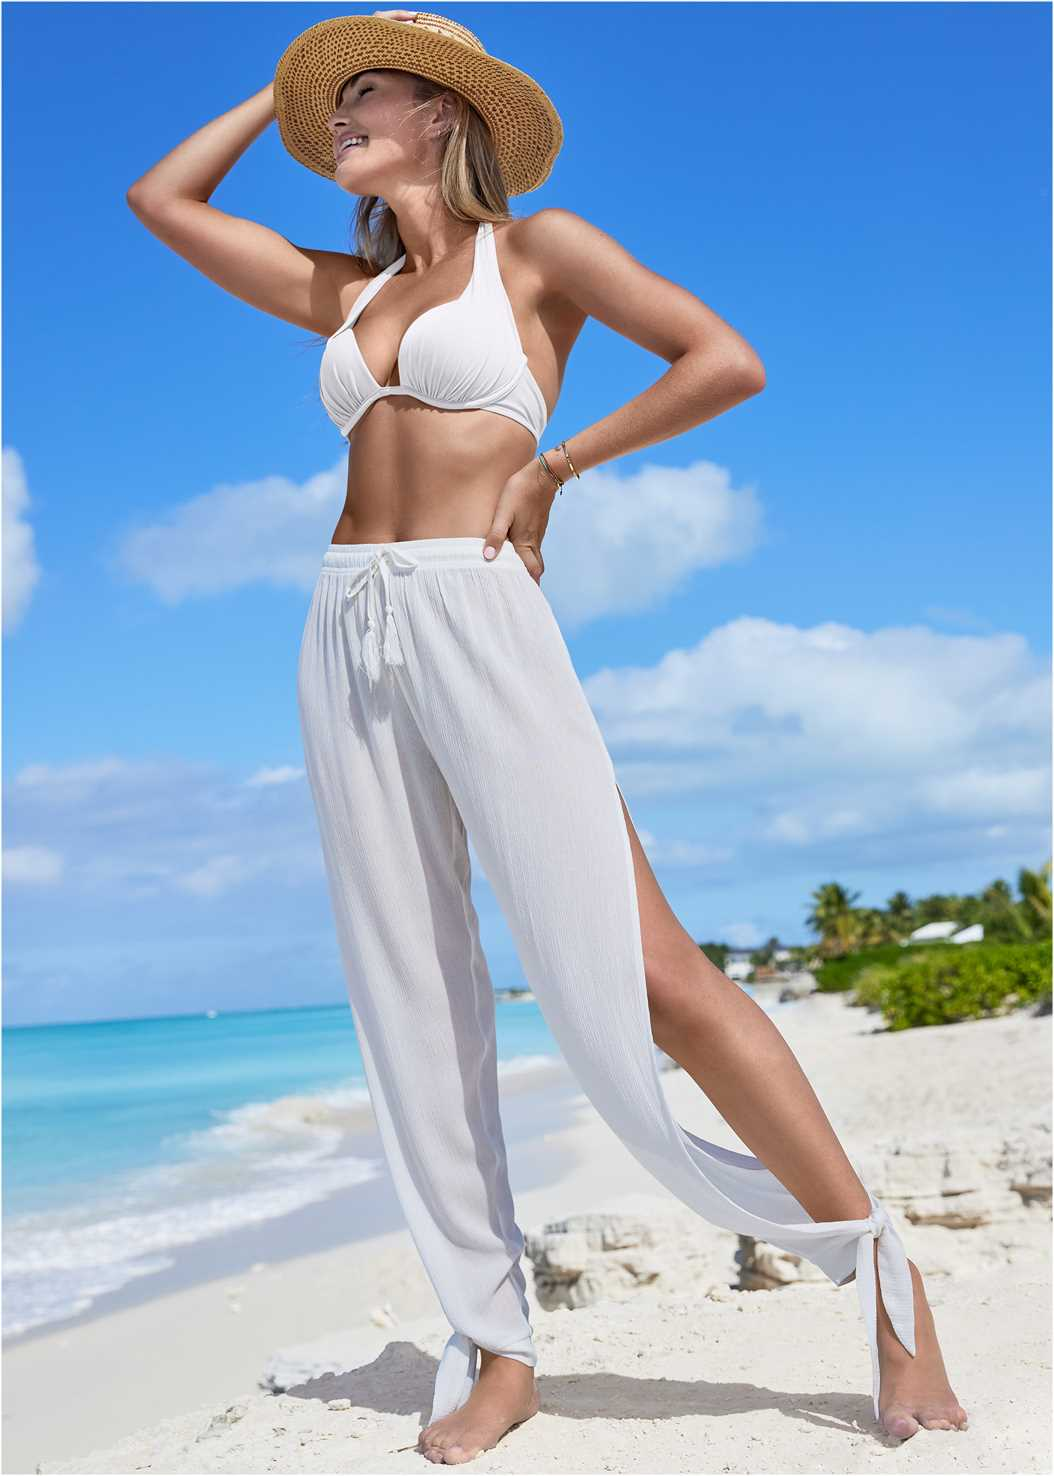 Side Split Beach Pant,Marilyn Underwire Push Up Halter Top,Low Rise Classic Bikini Bottom ,Scoop Front Classic Bikini Bottom ,Versatility By Venus™ Reversible One-Piece,Ring Handle Straw Tote